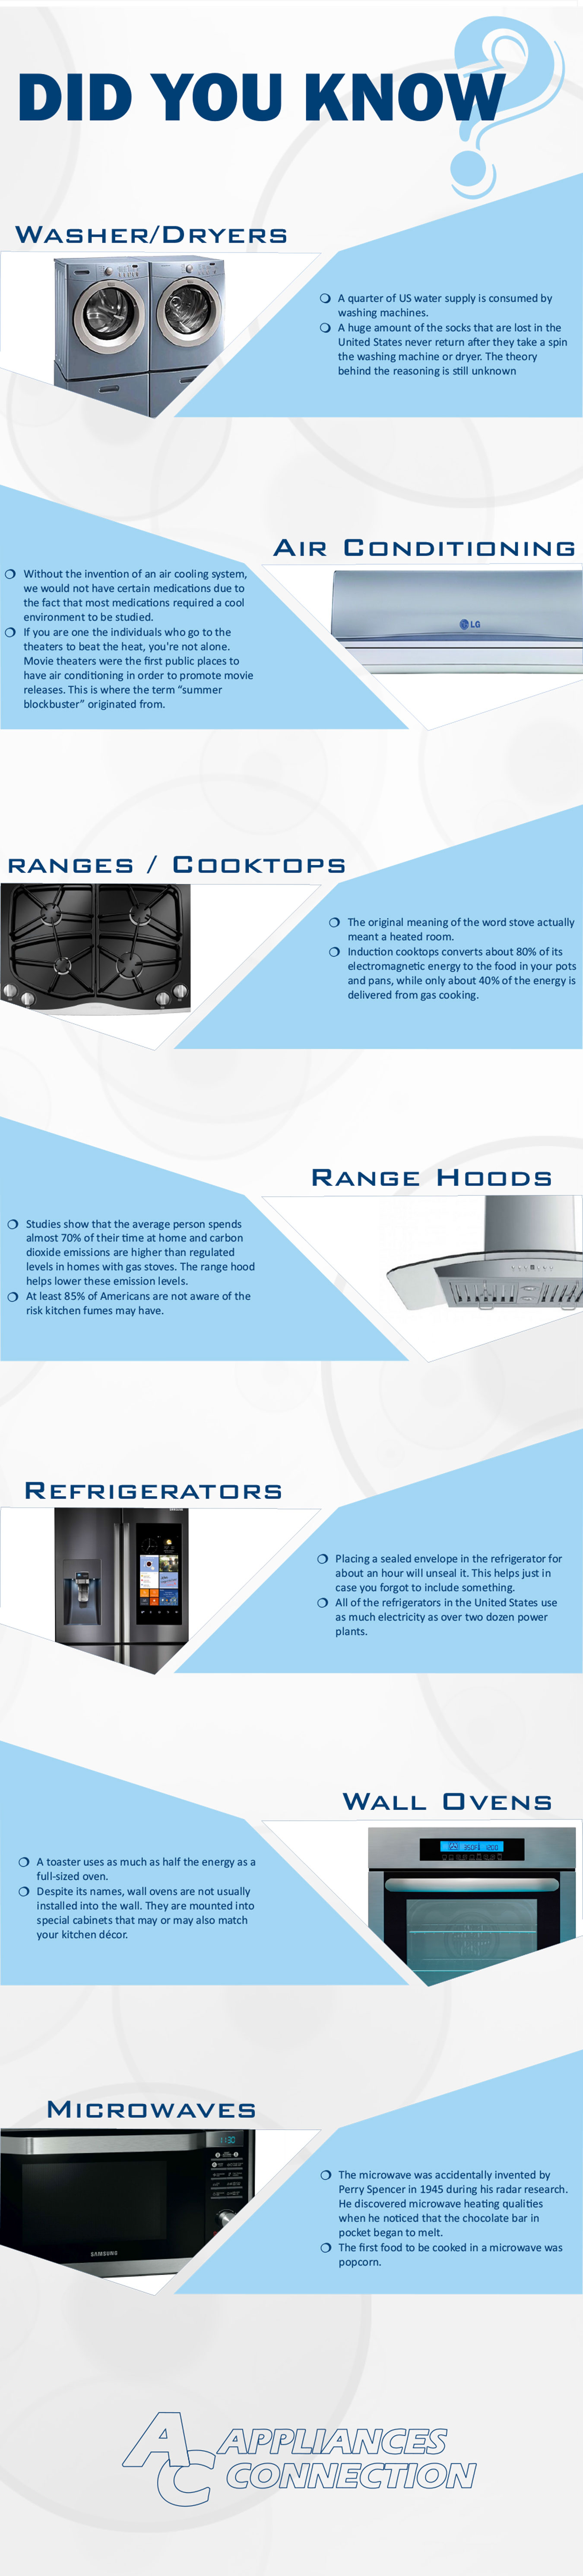 Appliance Fun Facts from Appliances Connection